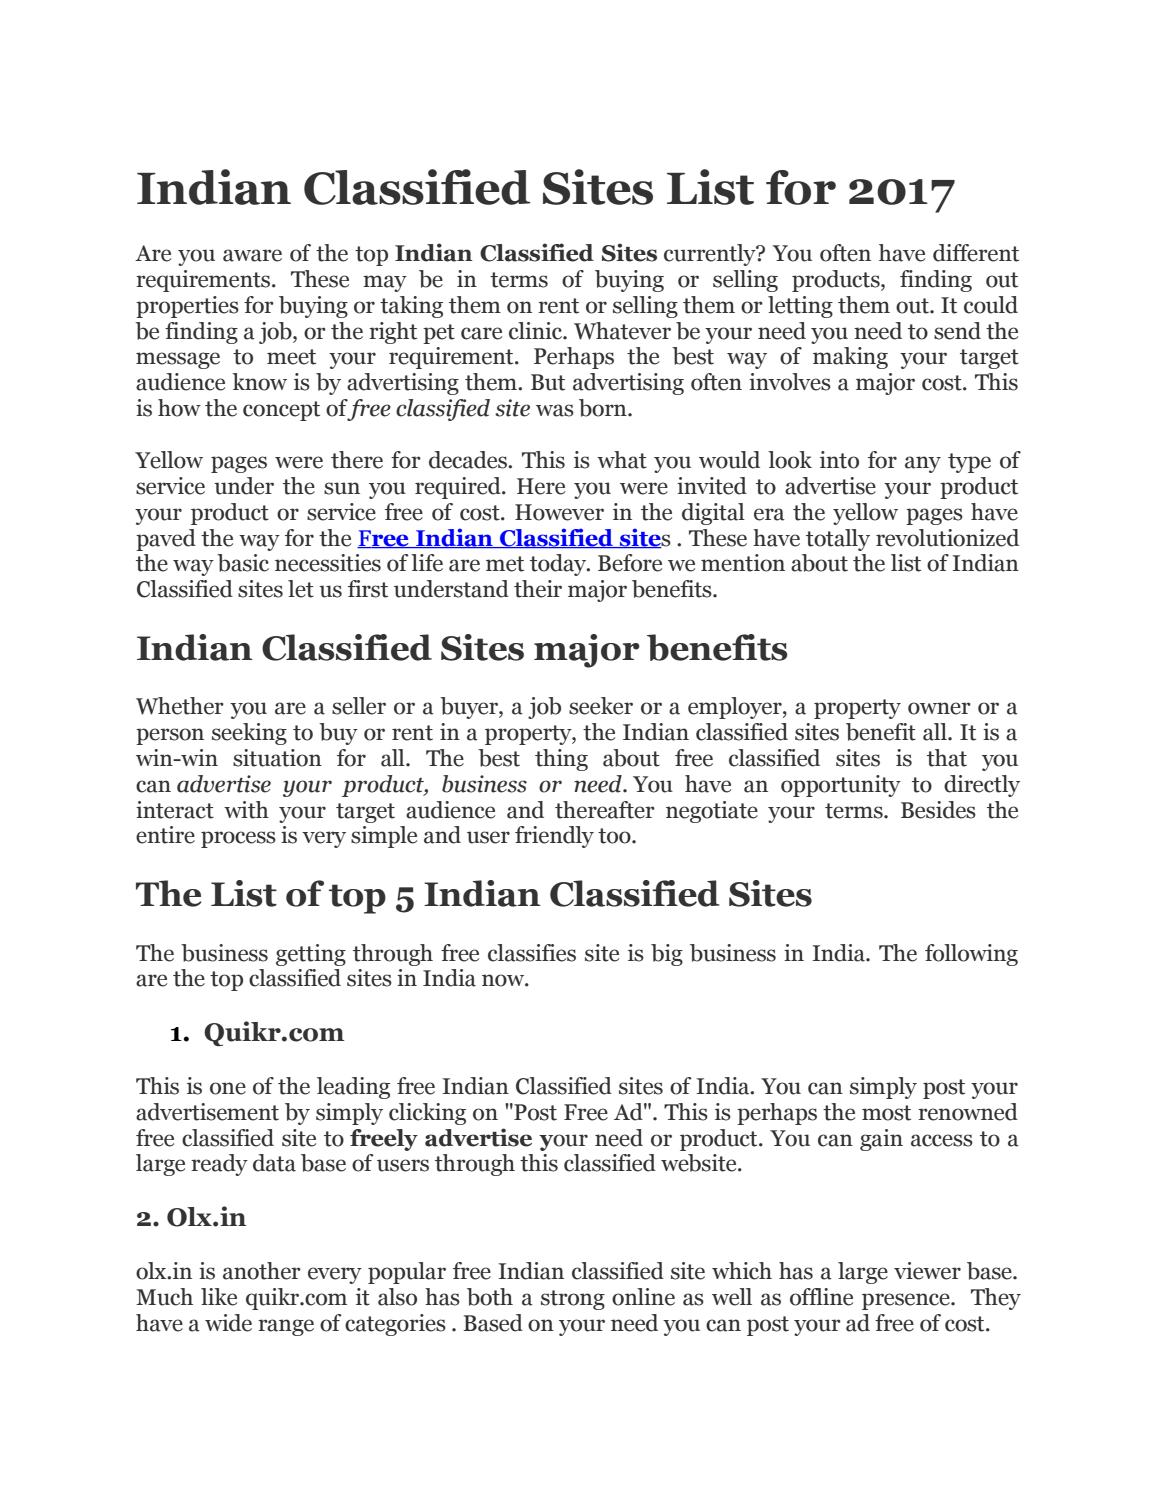 Free indian classified site list 2017-2018 - Download Doc